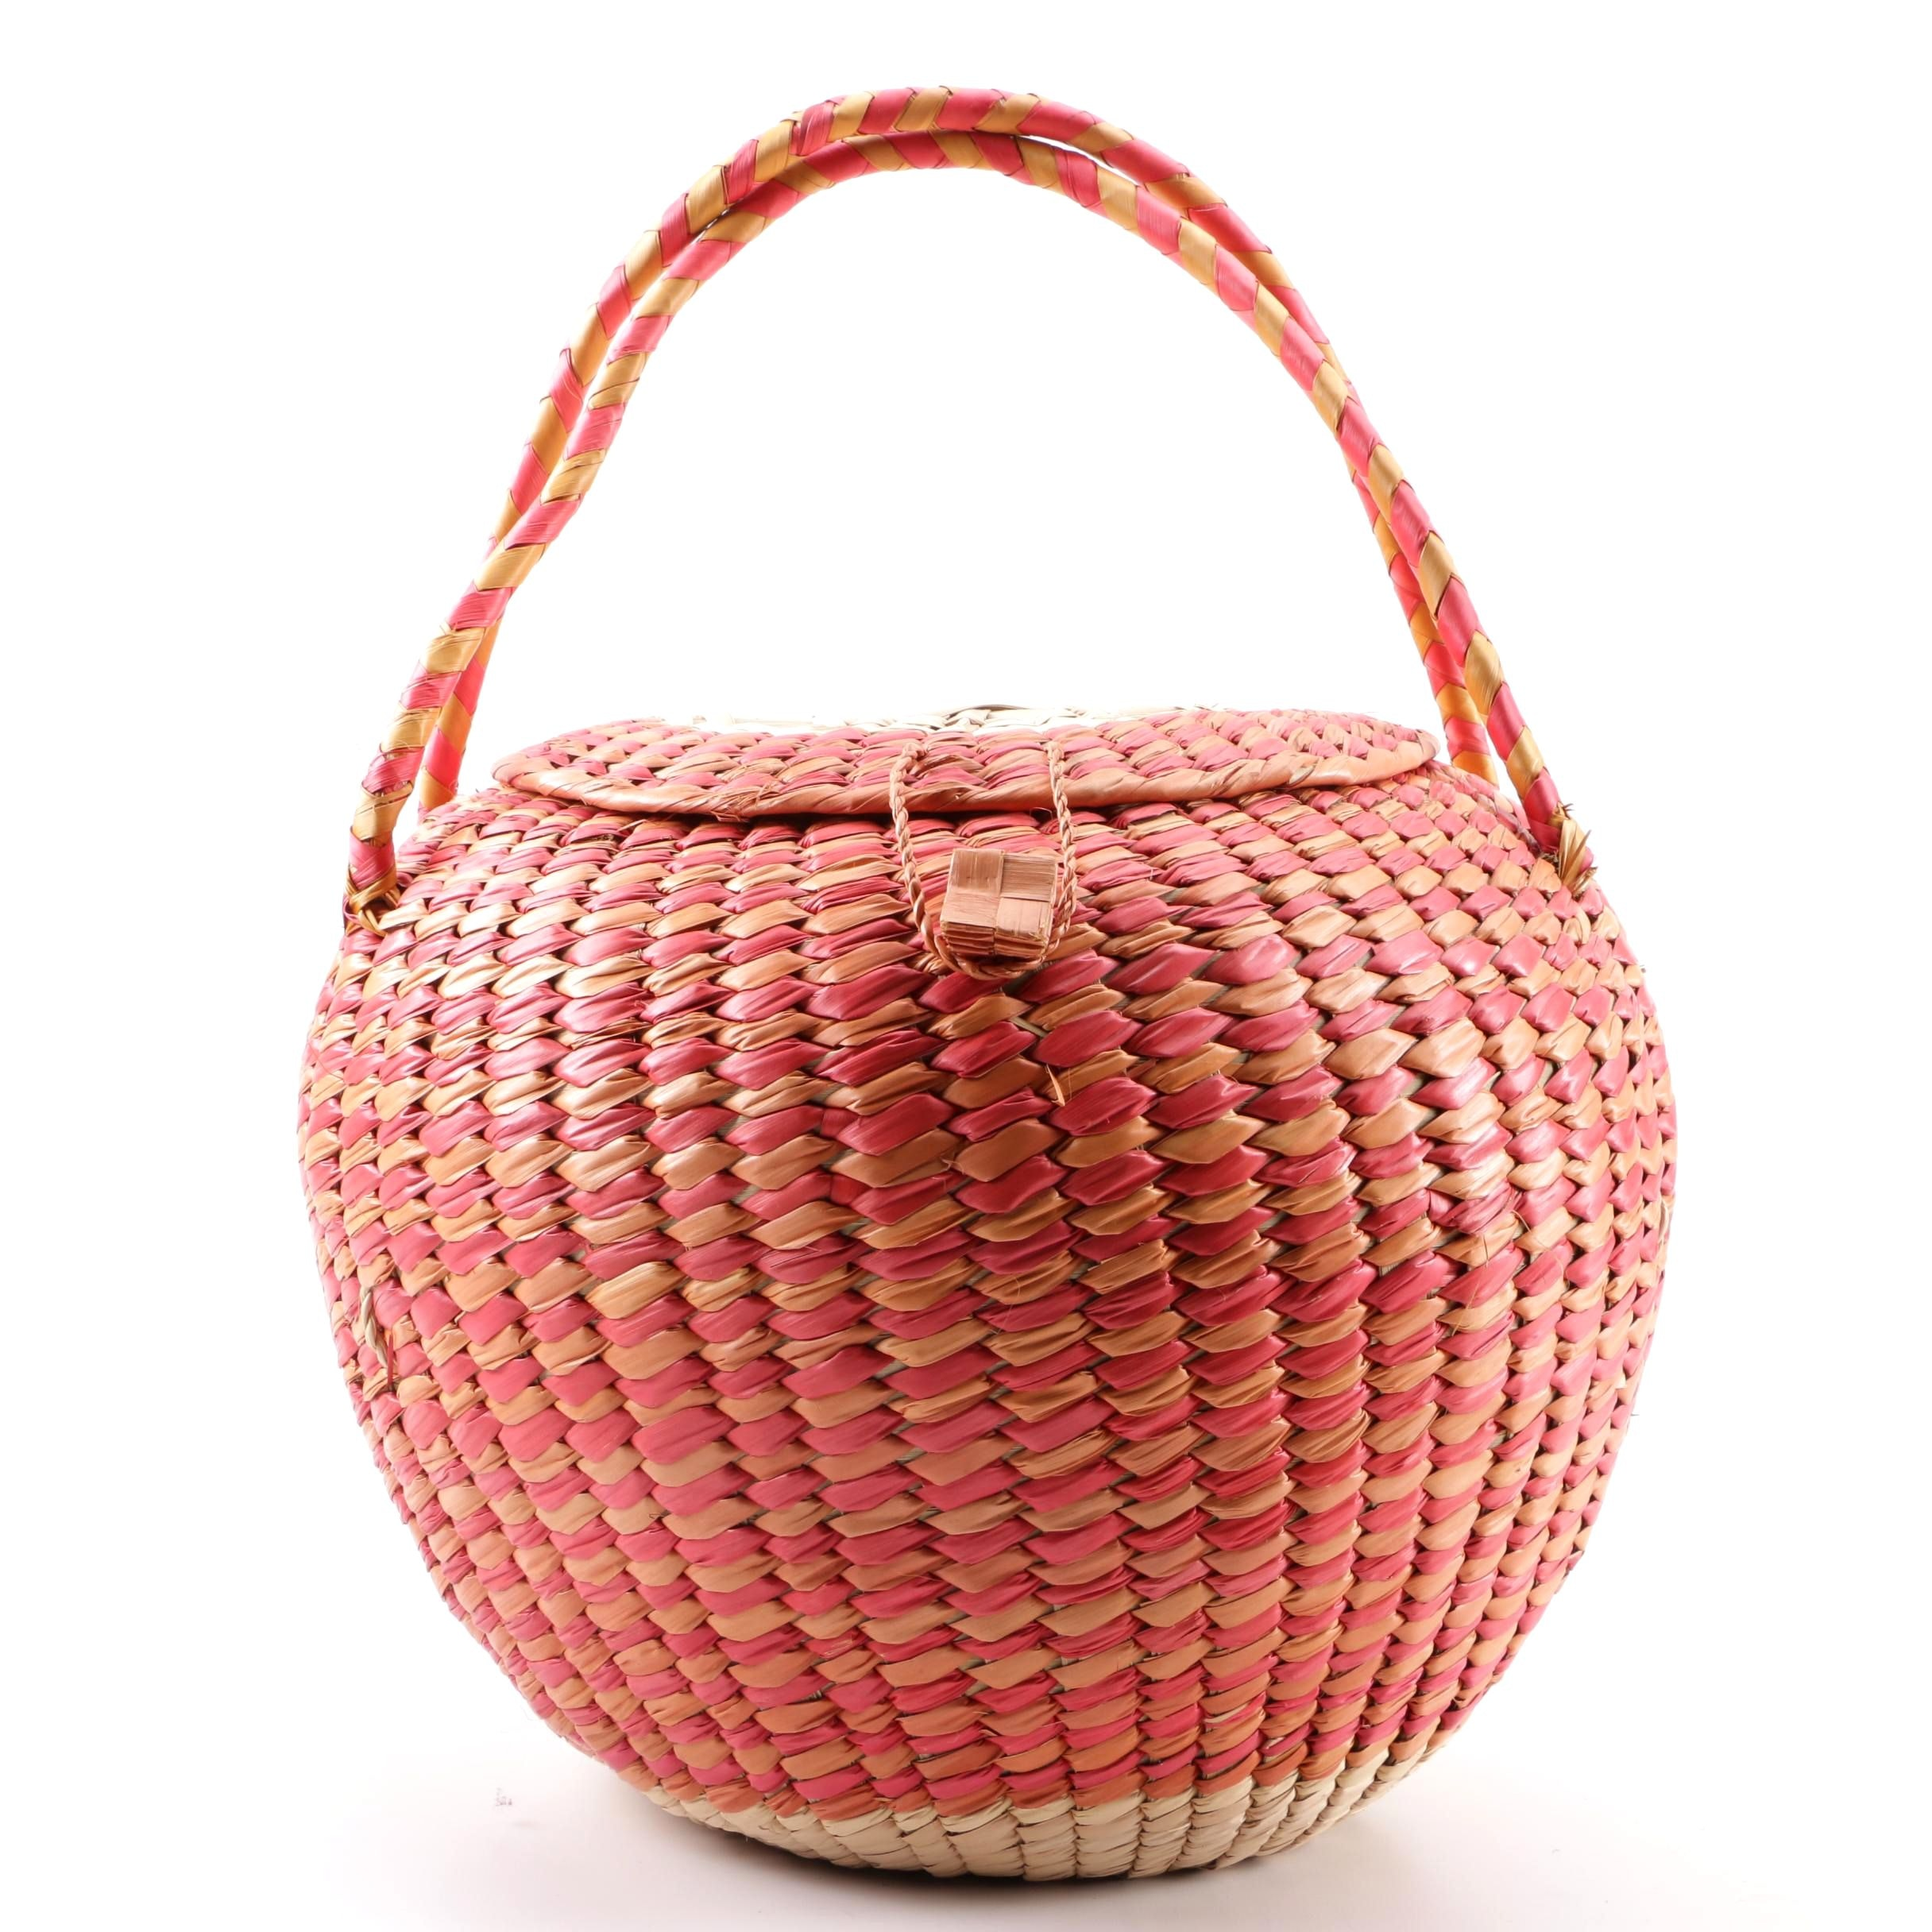 Handwoven Dyed Natural Fiber Raffia Basket Purse with Dual Handles